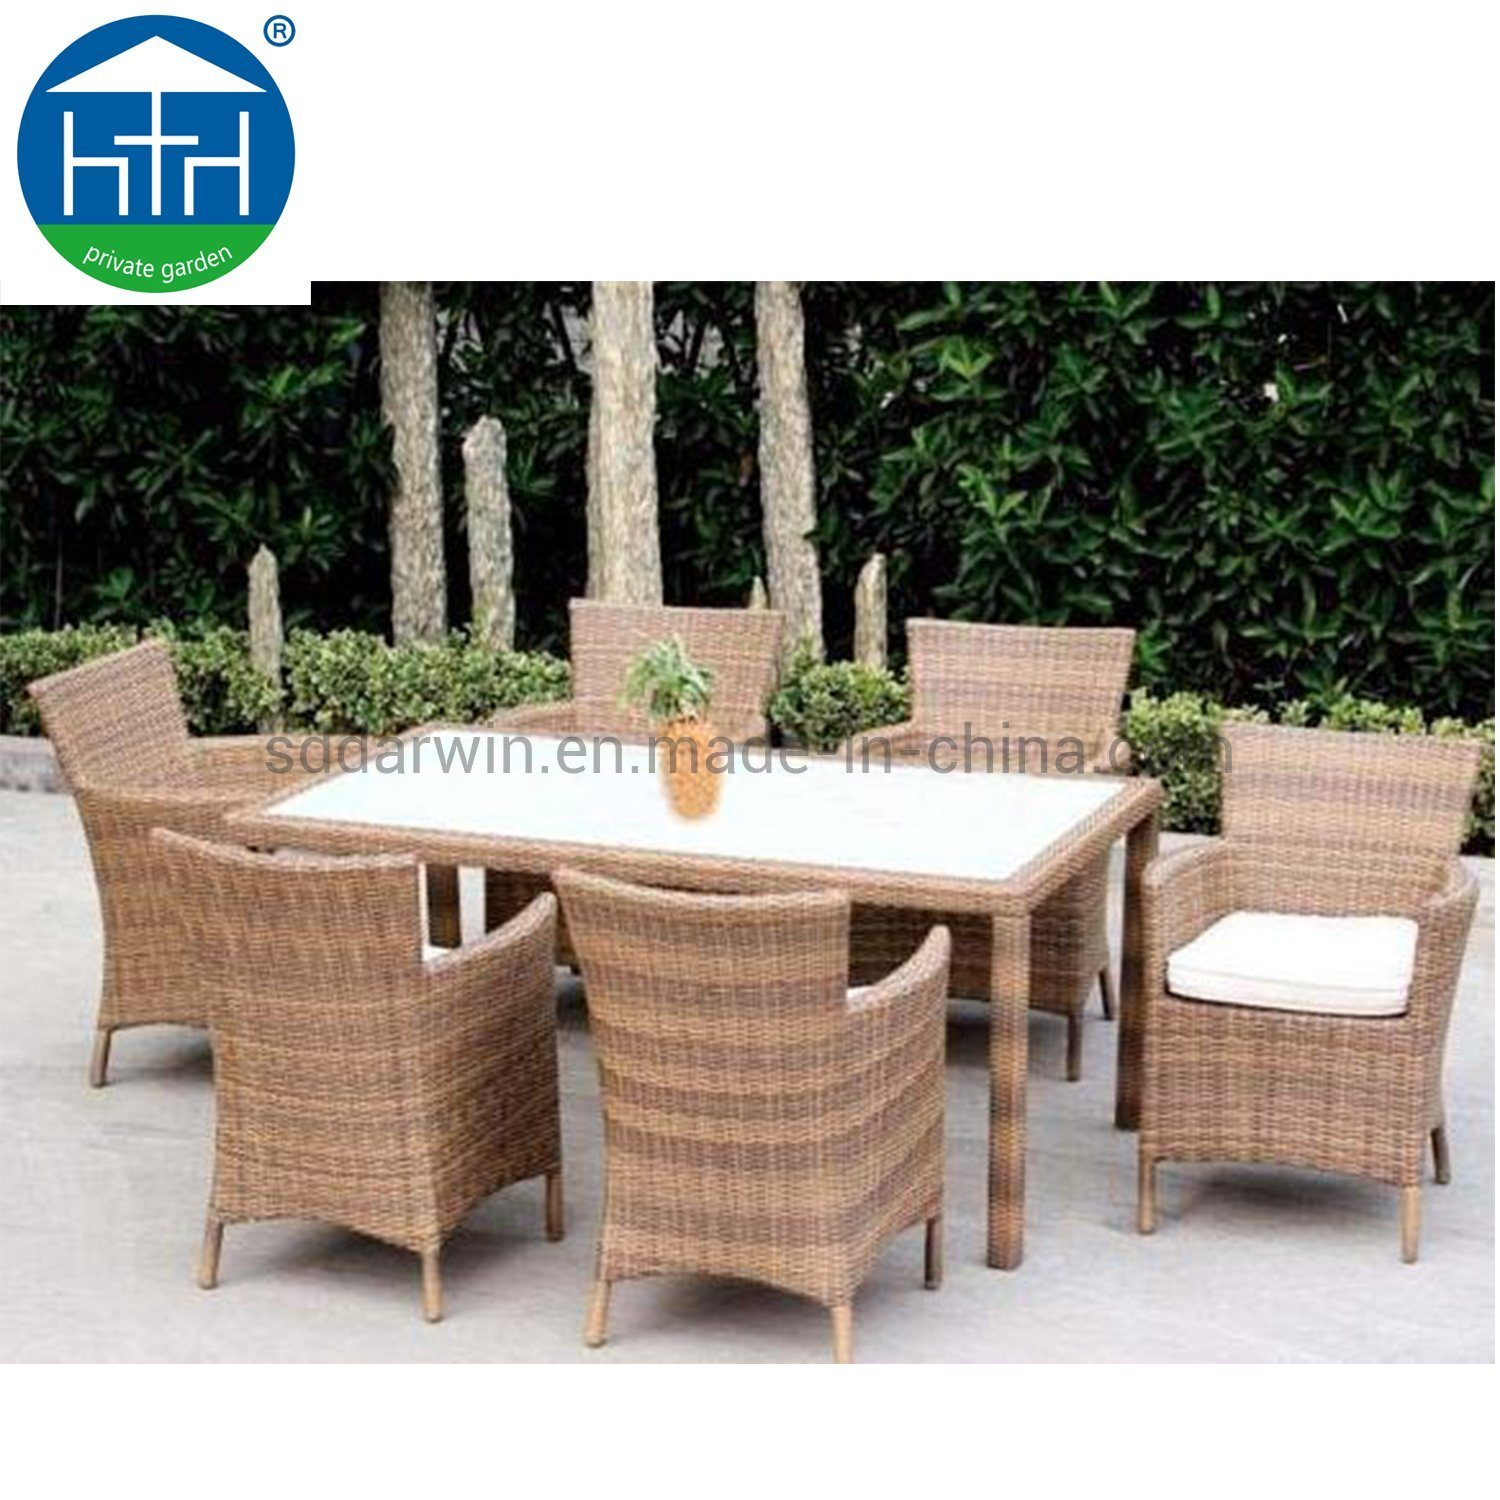 China High Quality Wicker Outdoor Furniture Set Dining Table And Chair Garden Patio Setting Photos Pictures Made In China Com